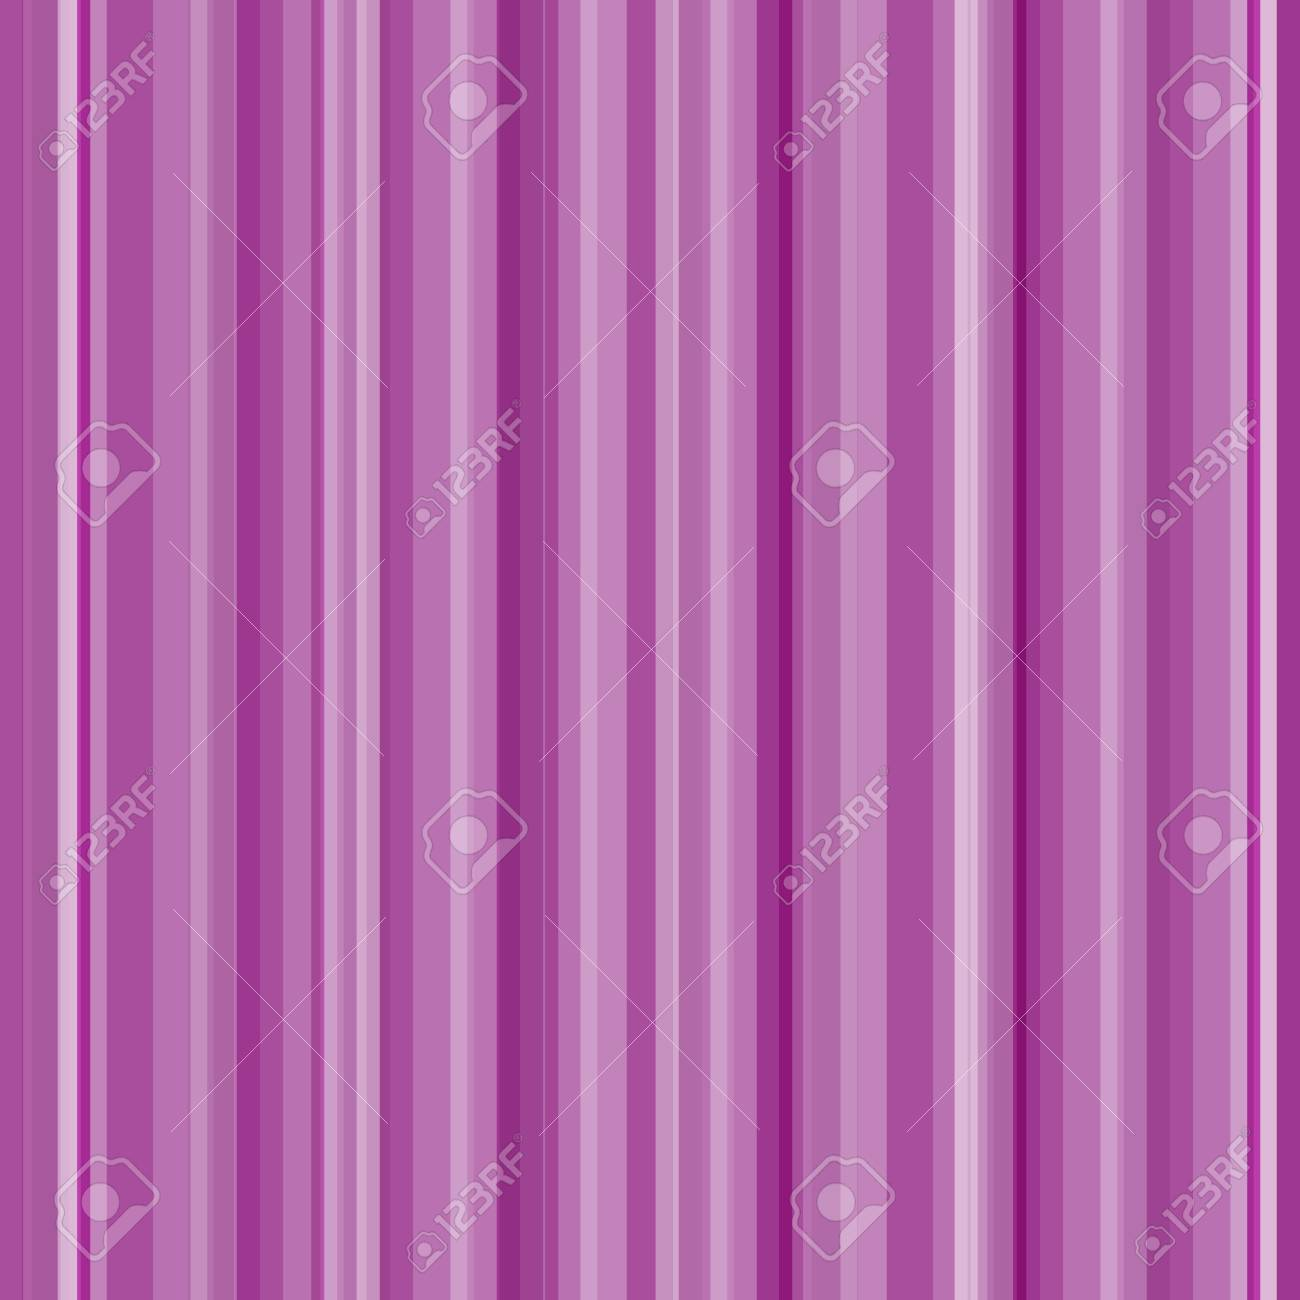 Abstract Striped Pattern Wallpaper Vector Illustration For Cute Design Light Purple Colors Seamless